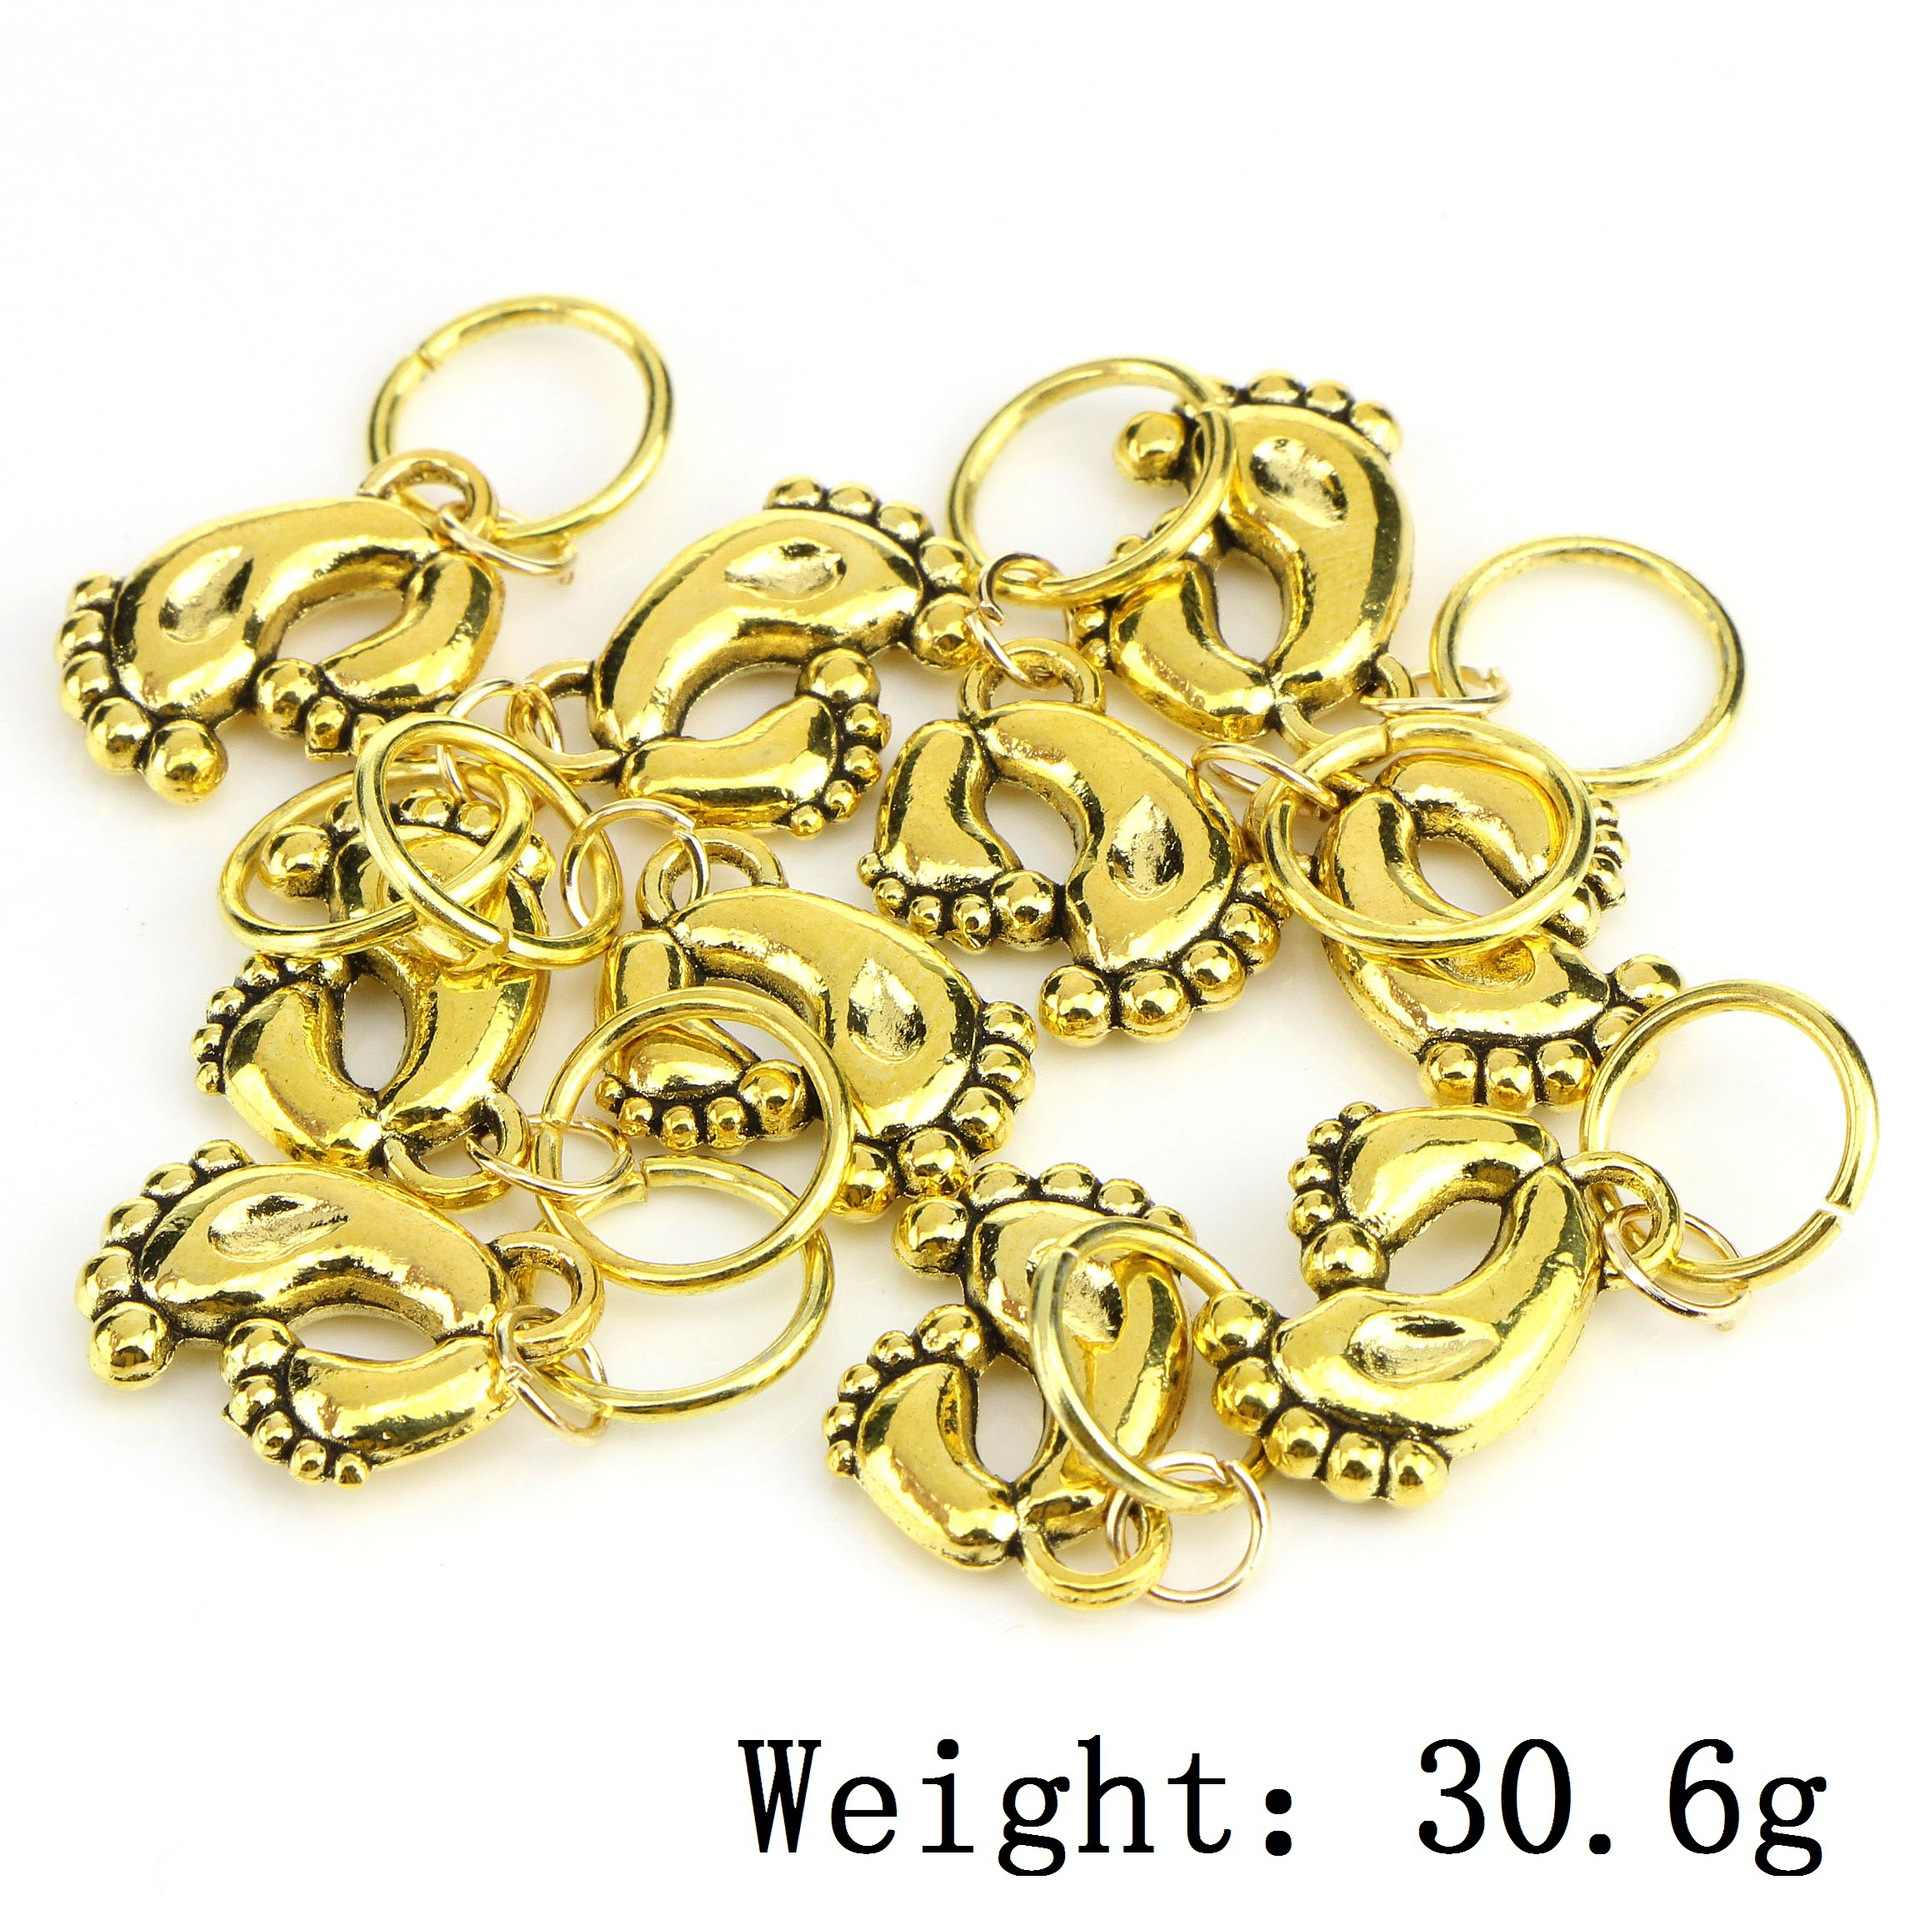 10Pcs/Pack Gold 14 styles Charms diy hair braid dread dreadlock beads clips cuffs rings Jewelry dreadlock hair accessories